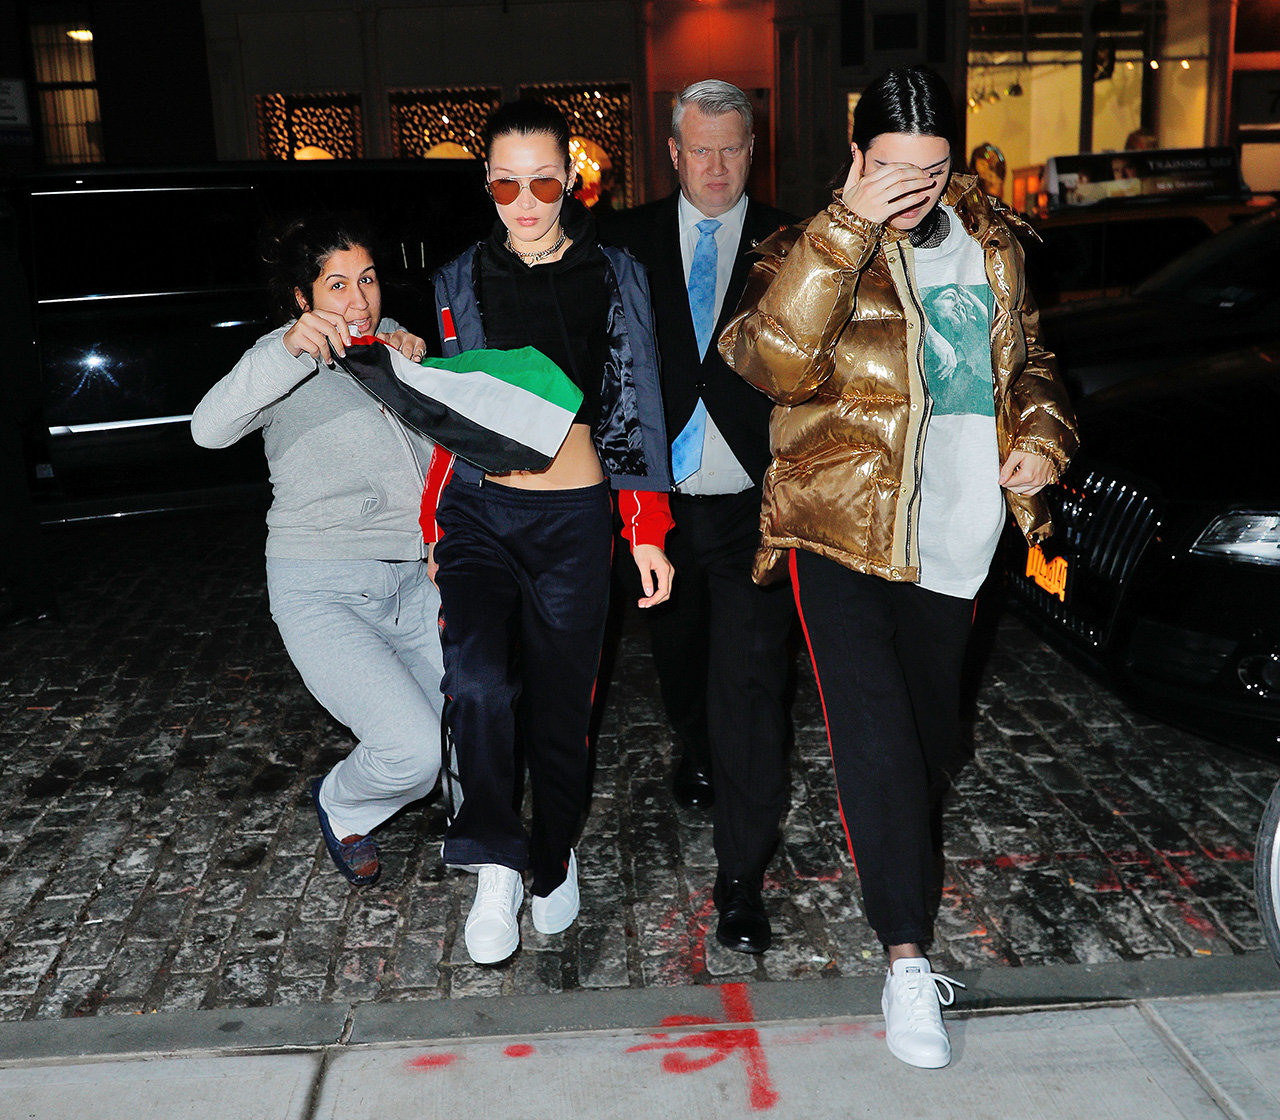 Scary moment as a crazed fan drapes the Palestinian flag across Bella Hadid and Kendall Jenner upon arrival at Gigi's apartment in New York.� The fan was arrested by police moments later <P> Pictured: Bella Hadid, Kendall Jenner <B>Ref: SPL1424695  180117  </B><BR/> Picture by: Jackson Lee / Splash News<BR/> </P><P> <B>Splash News and Pictures</B><BR/> Los Angeles:310-821-2666<BR/> New York:212-619-2666<BR/> London:870-934-2666<BR/> photodesk@splashnews.com<BR/> </P>